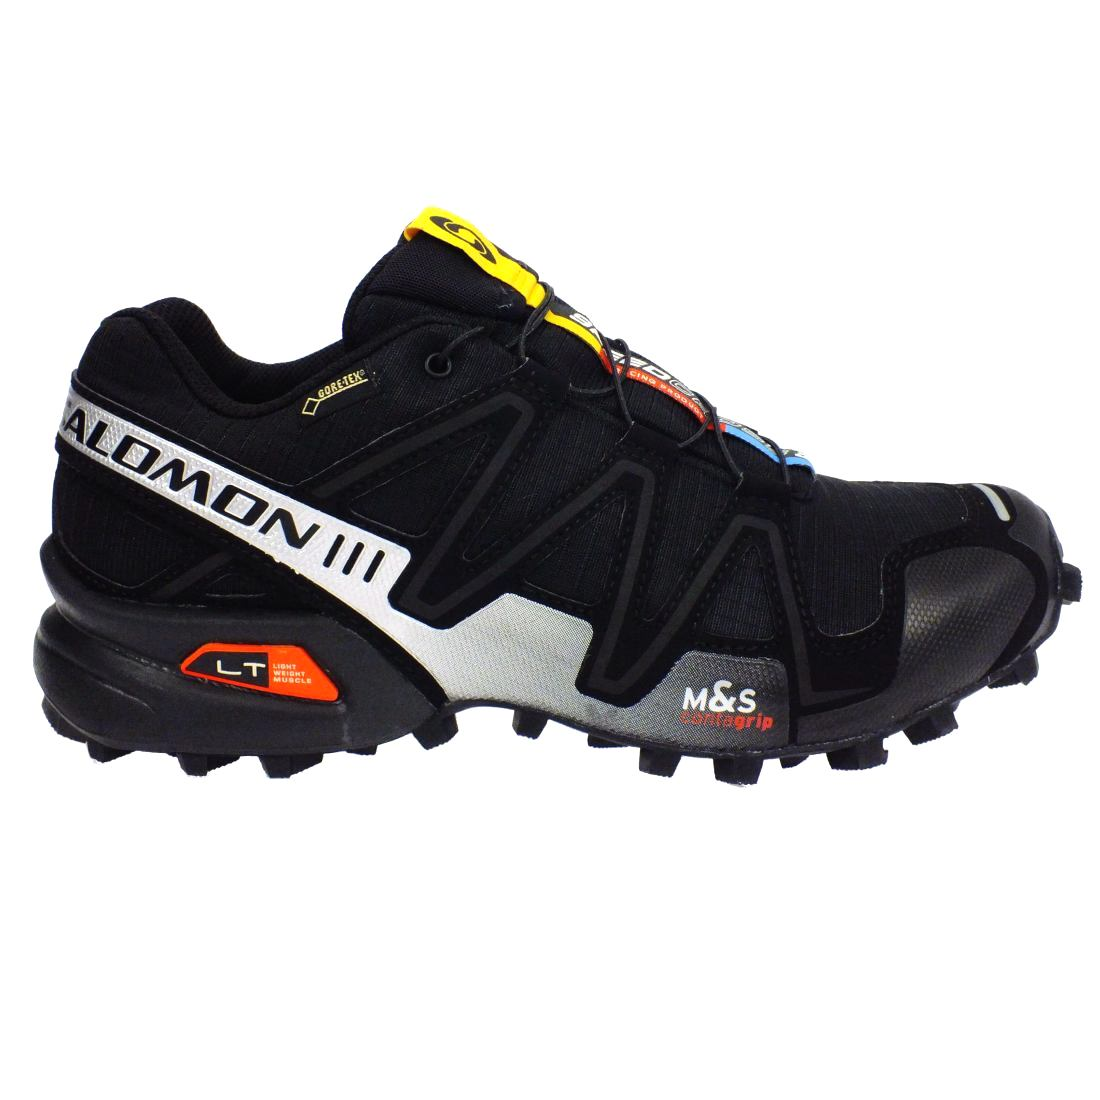 salomon speedcross 3 gtx men 39 s running trail running outdoor gore tex shoes ebay. Black Bedroom Furniture Sets. Home Design Ideas